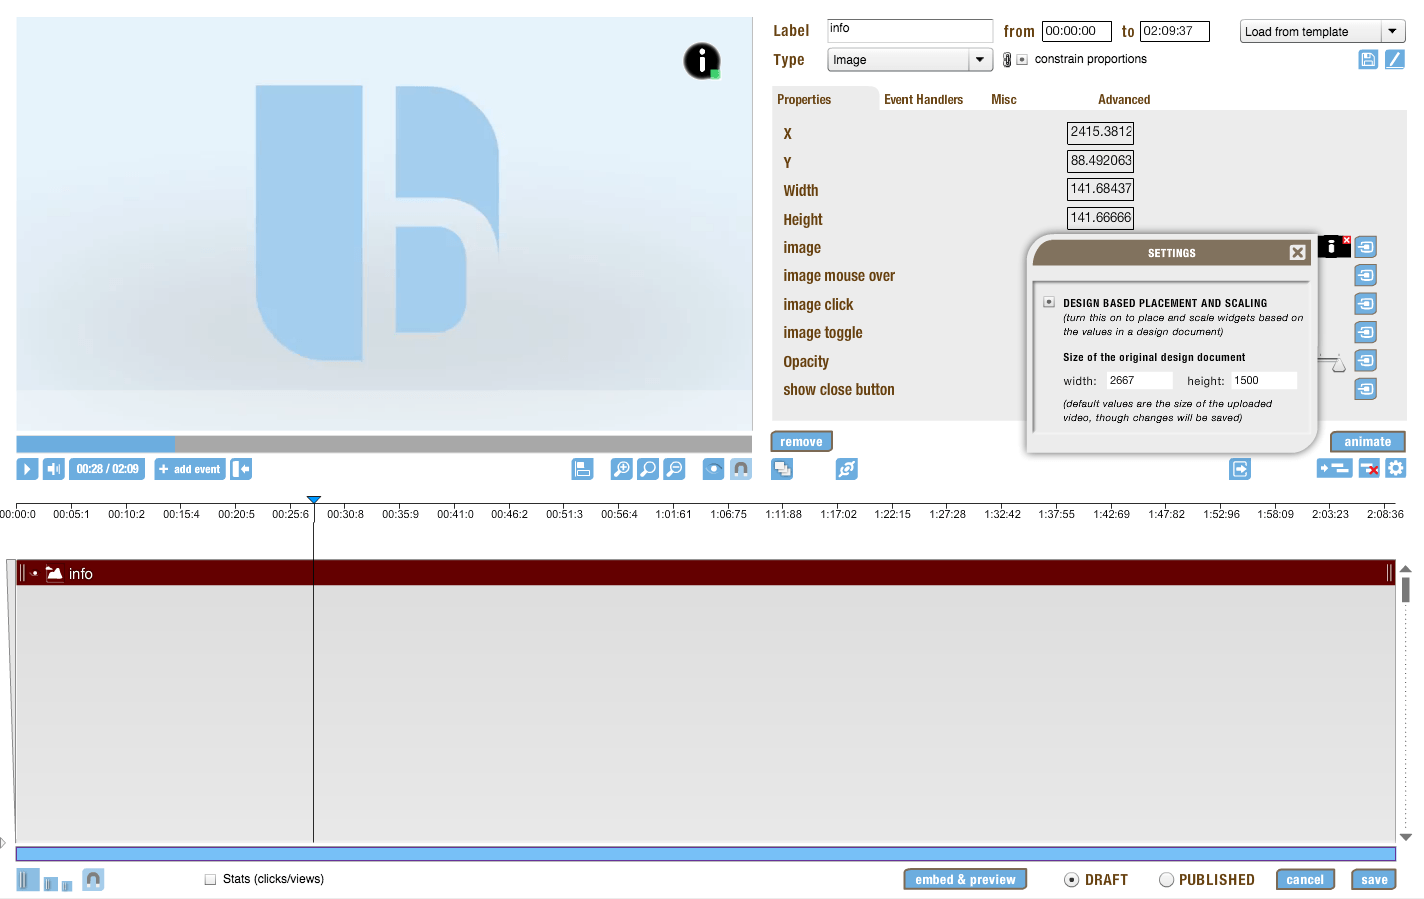 information in the timeline editor